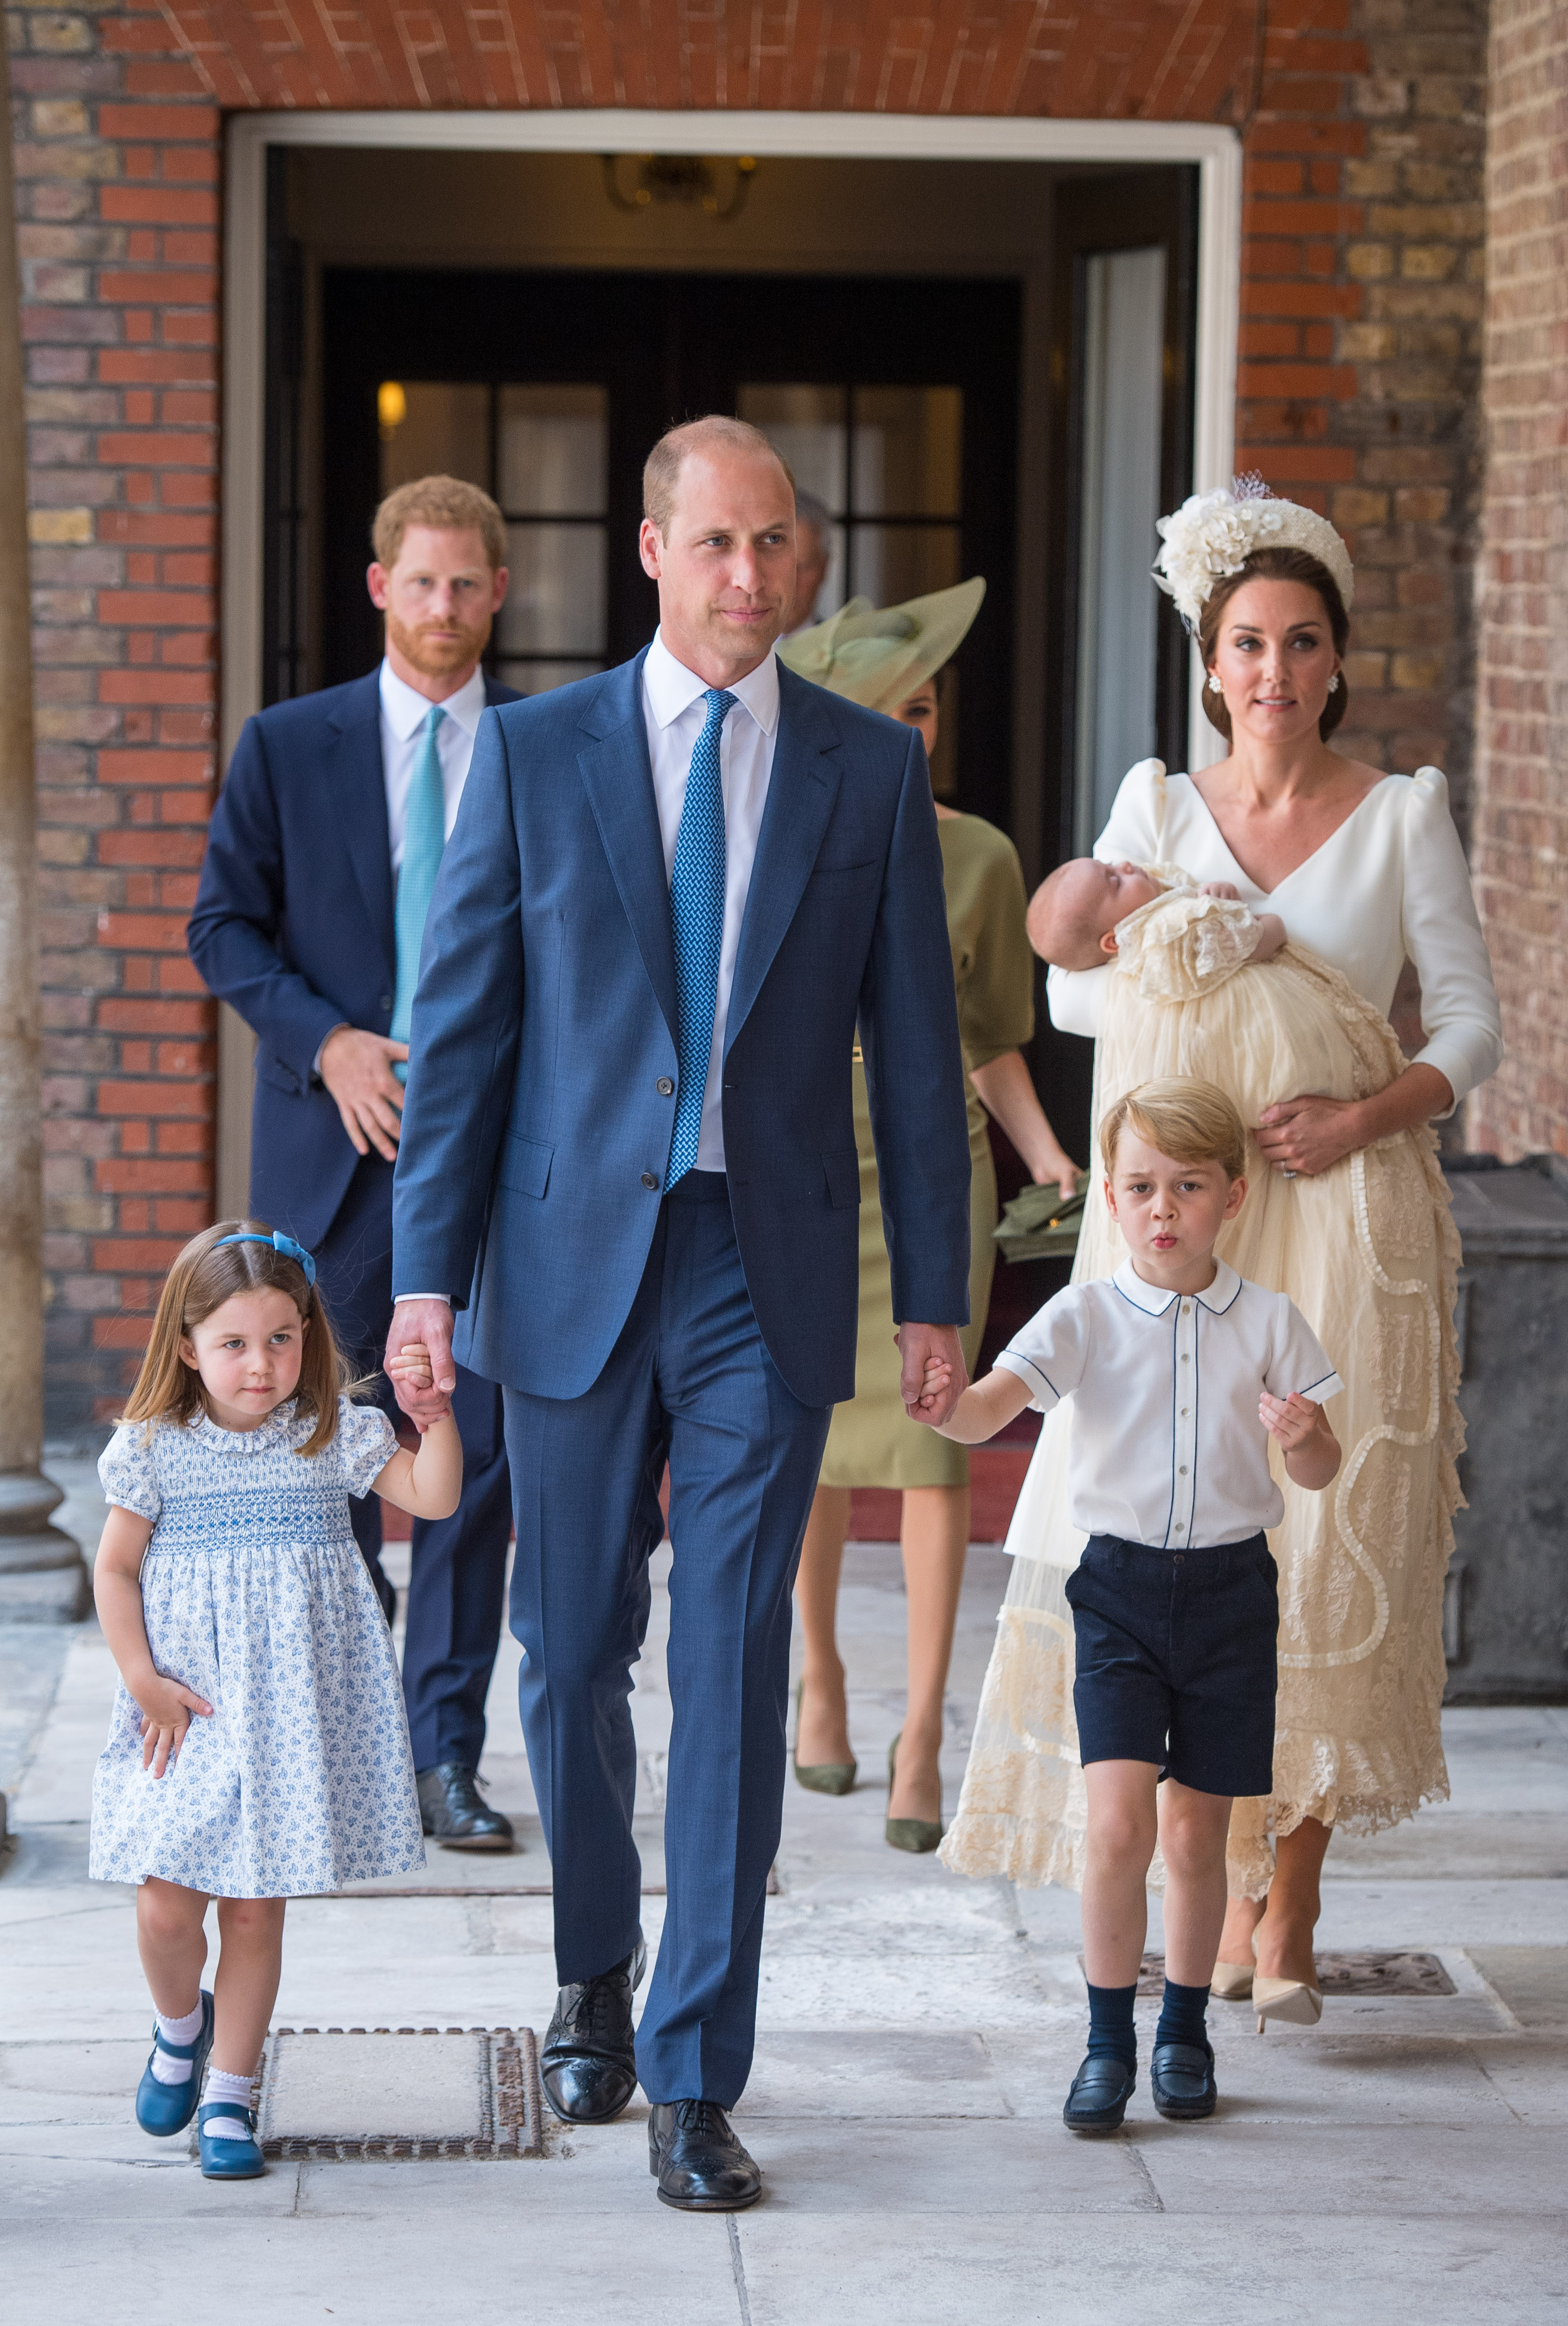 Princess Charlotte and Prince George hold the hands of their father, Prince William, Duke of Cambridge, as they arrive at the Chapel Royal, St James's Palace, London for the christening of their brother, Prince Louis, who is being carried by their mother, Catherine, Duchess of Cambridge on July 09, 2018 in London, England. (Photo by Dominic Lipinski - WPA Pool/Getty Images)